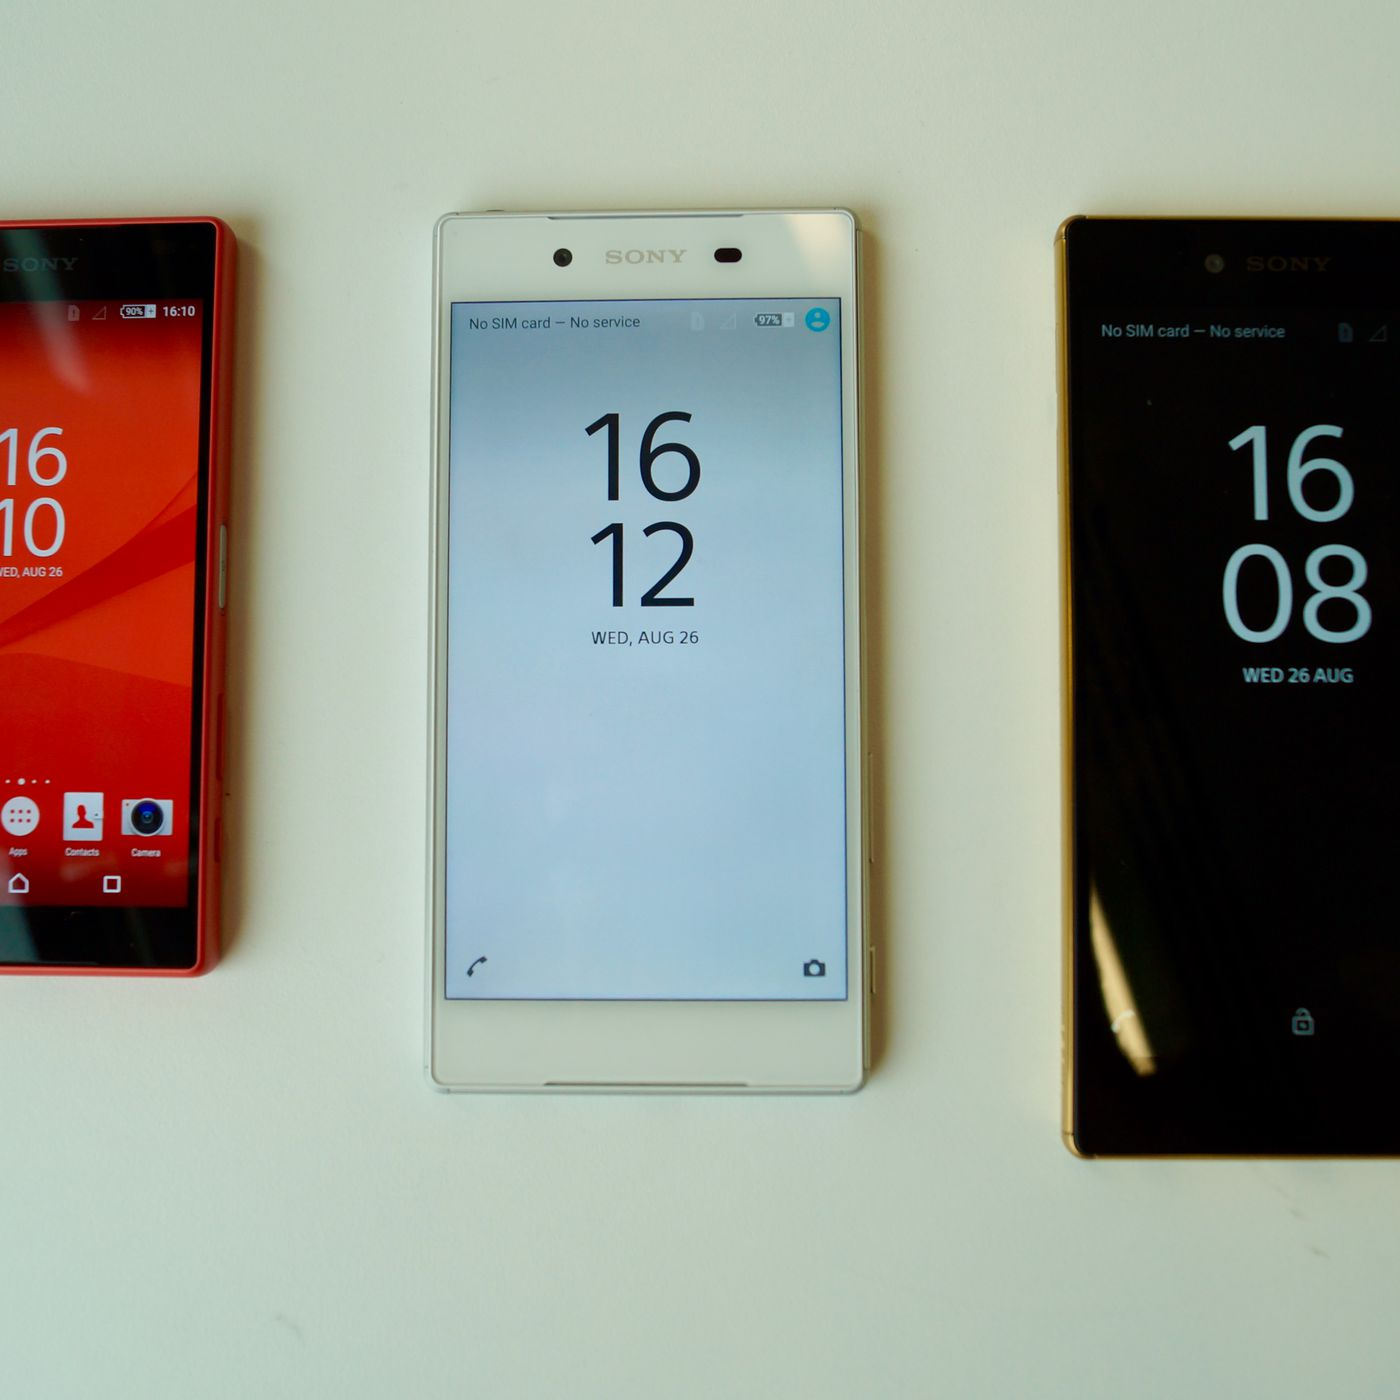 Sony launches Xperia Z5 family with fingerprint sensor and